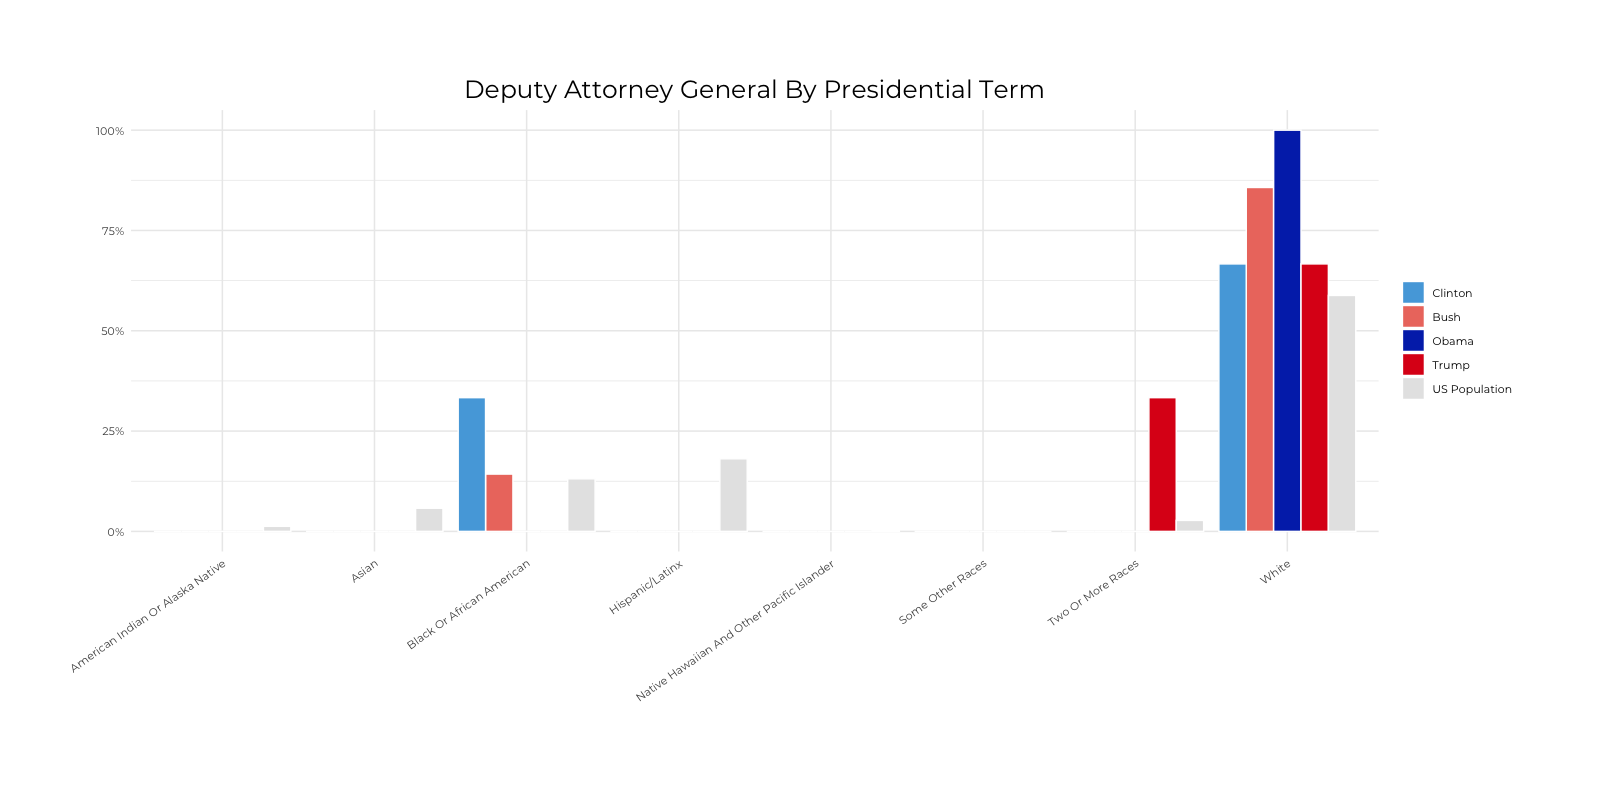 Graph about Racial Composition Comparison of Deputy Attorney General by Presidential Terms. More detailed text description below.